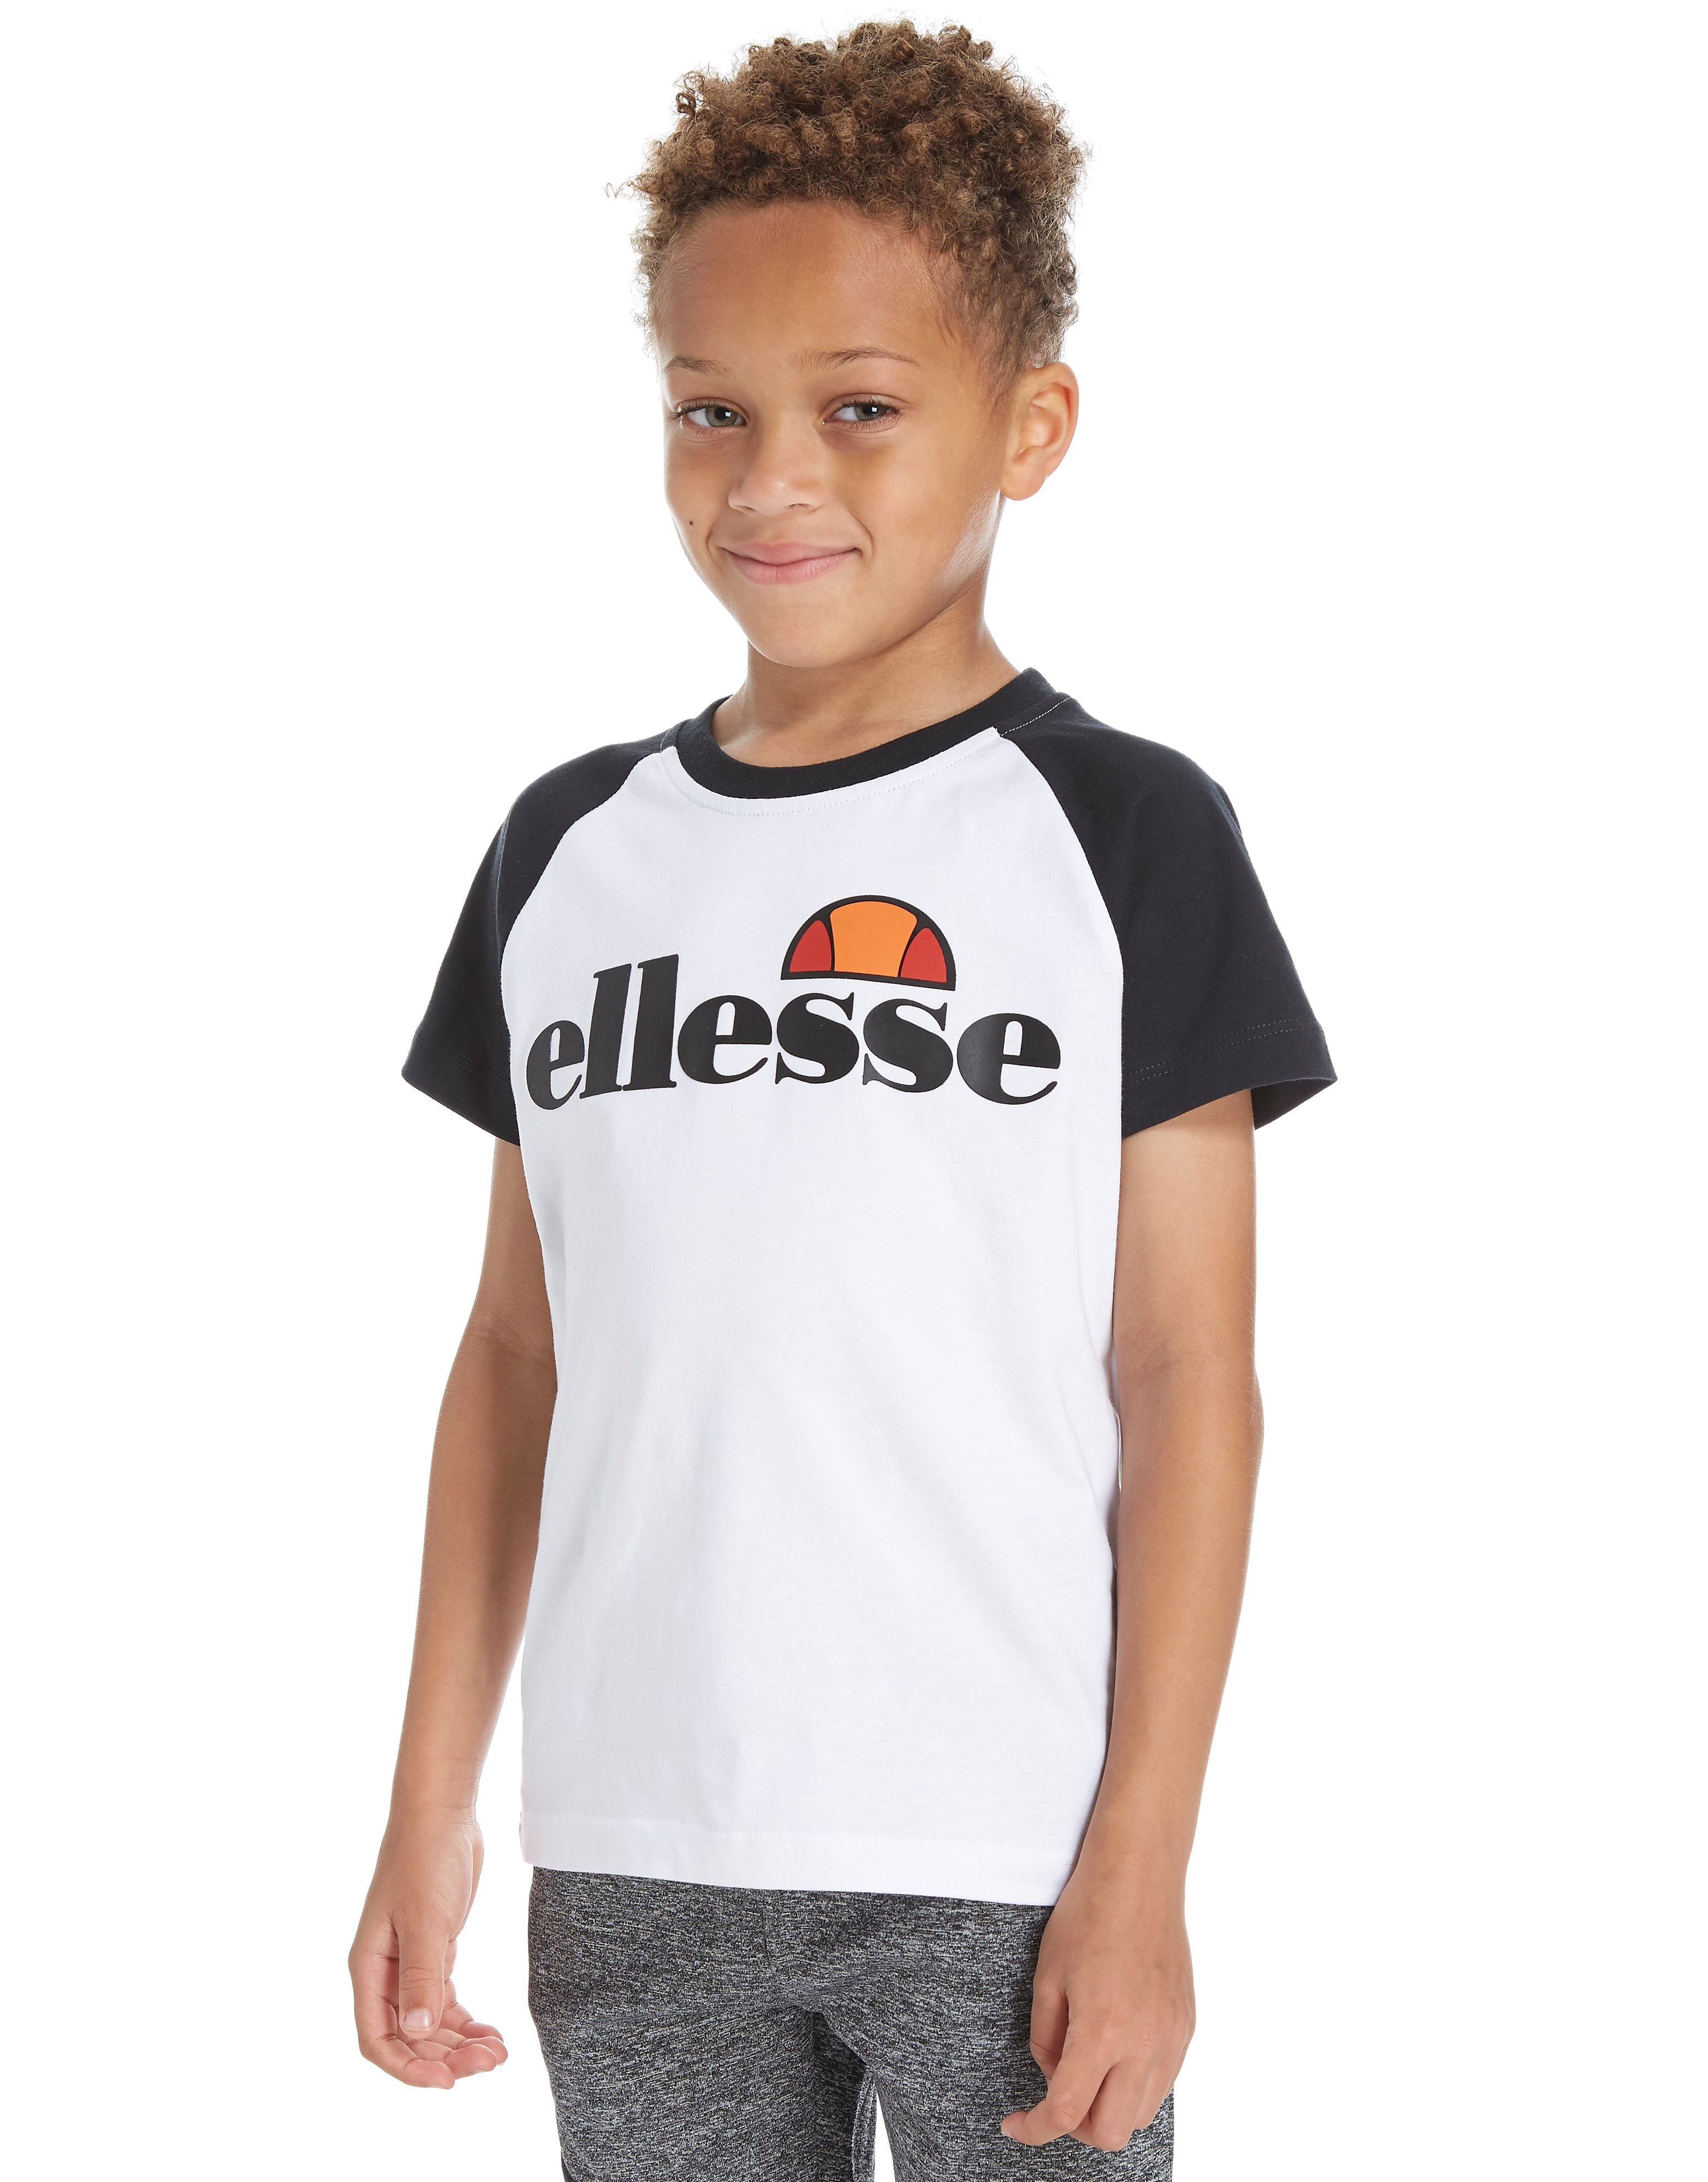 Ellesse Regino T-Shirt Children